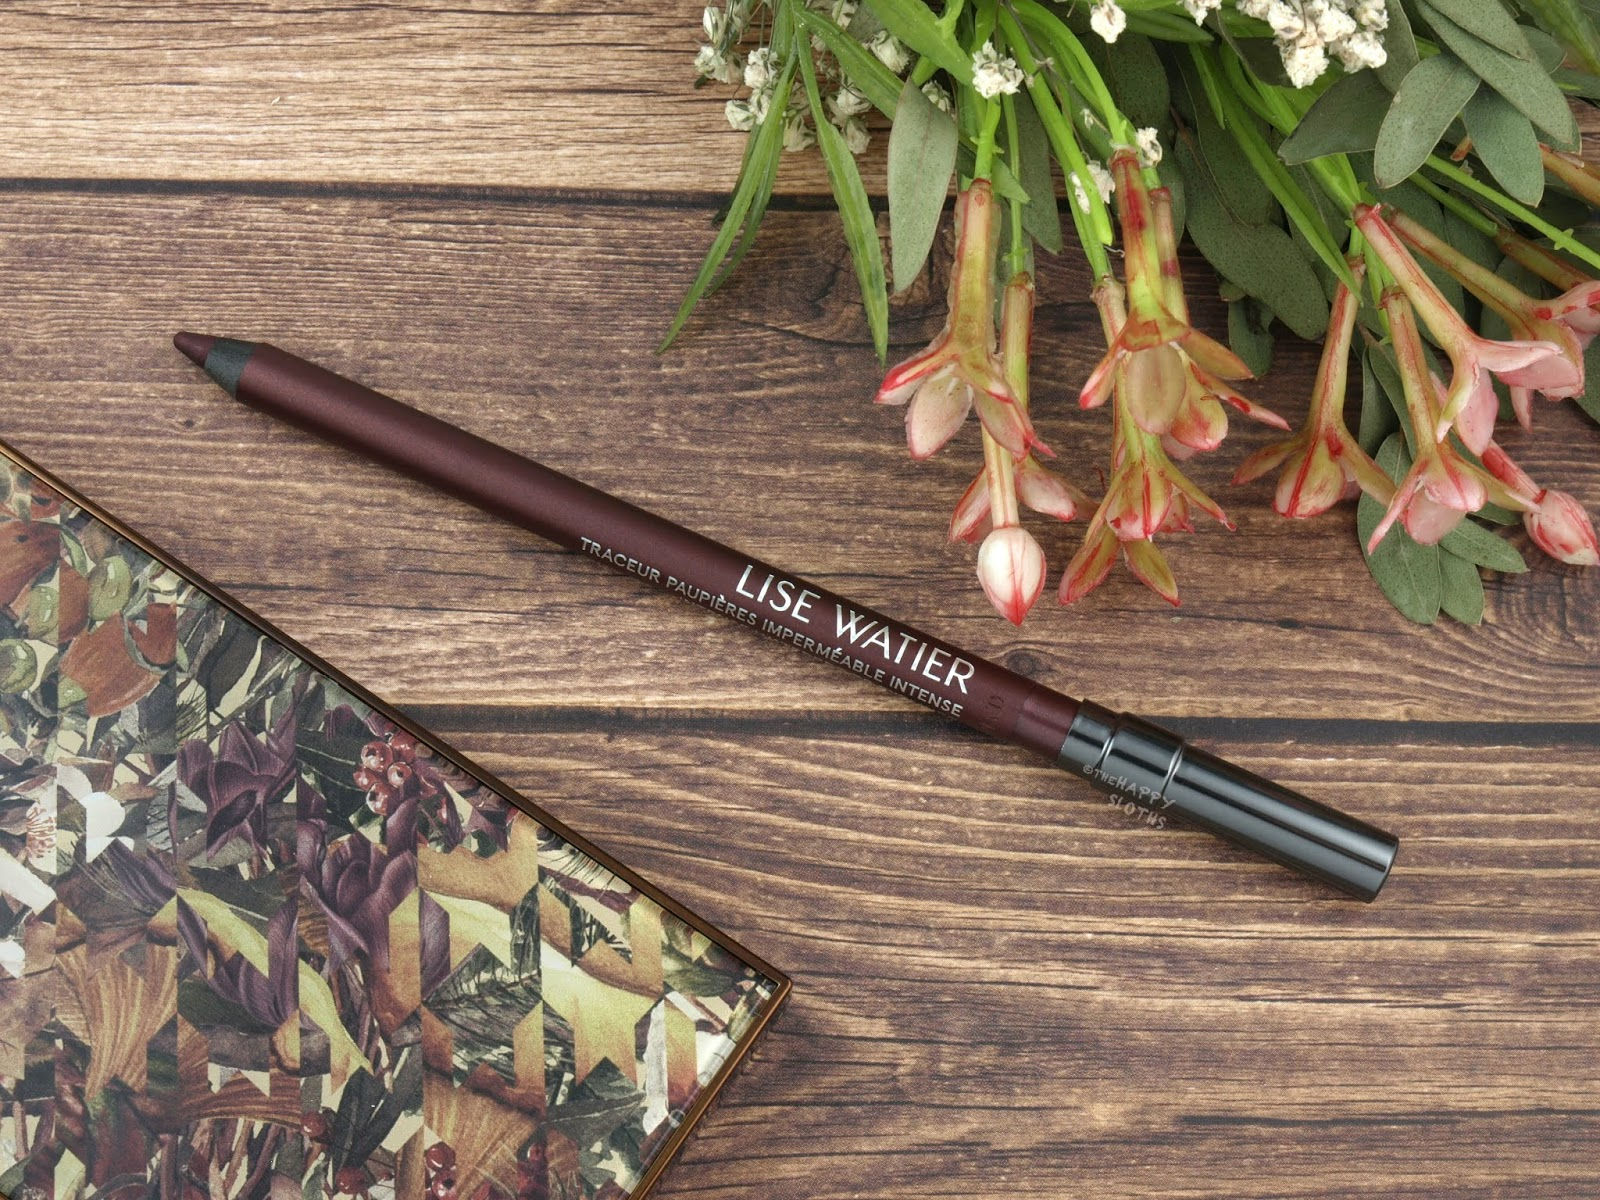 Lise Watier | Fall 2018 Haute Nature Intense Waterproof Eyeliner: Review and Swatches